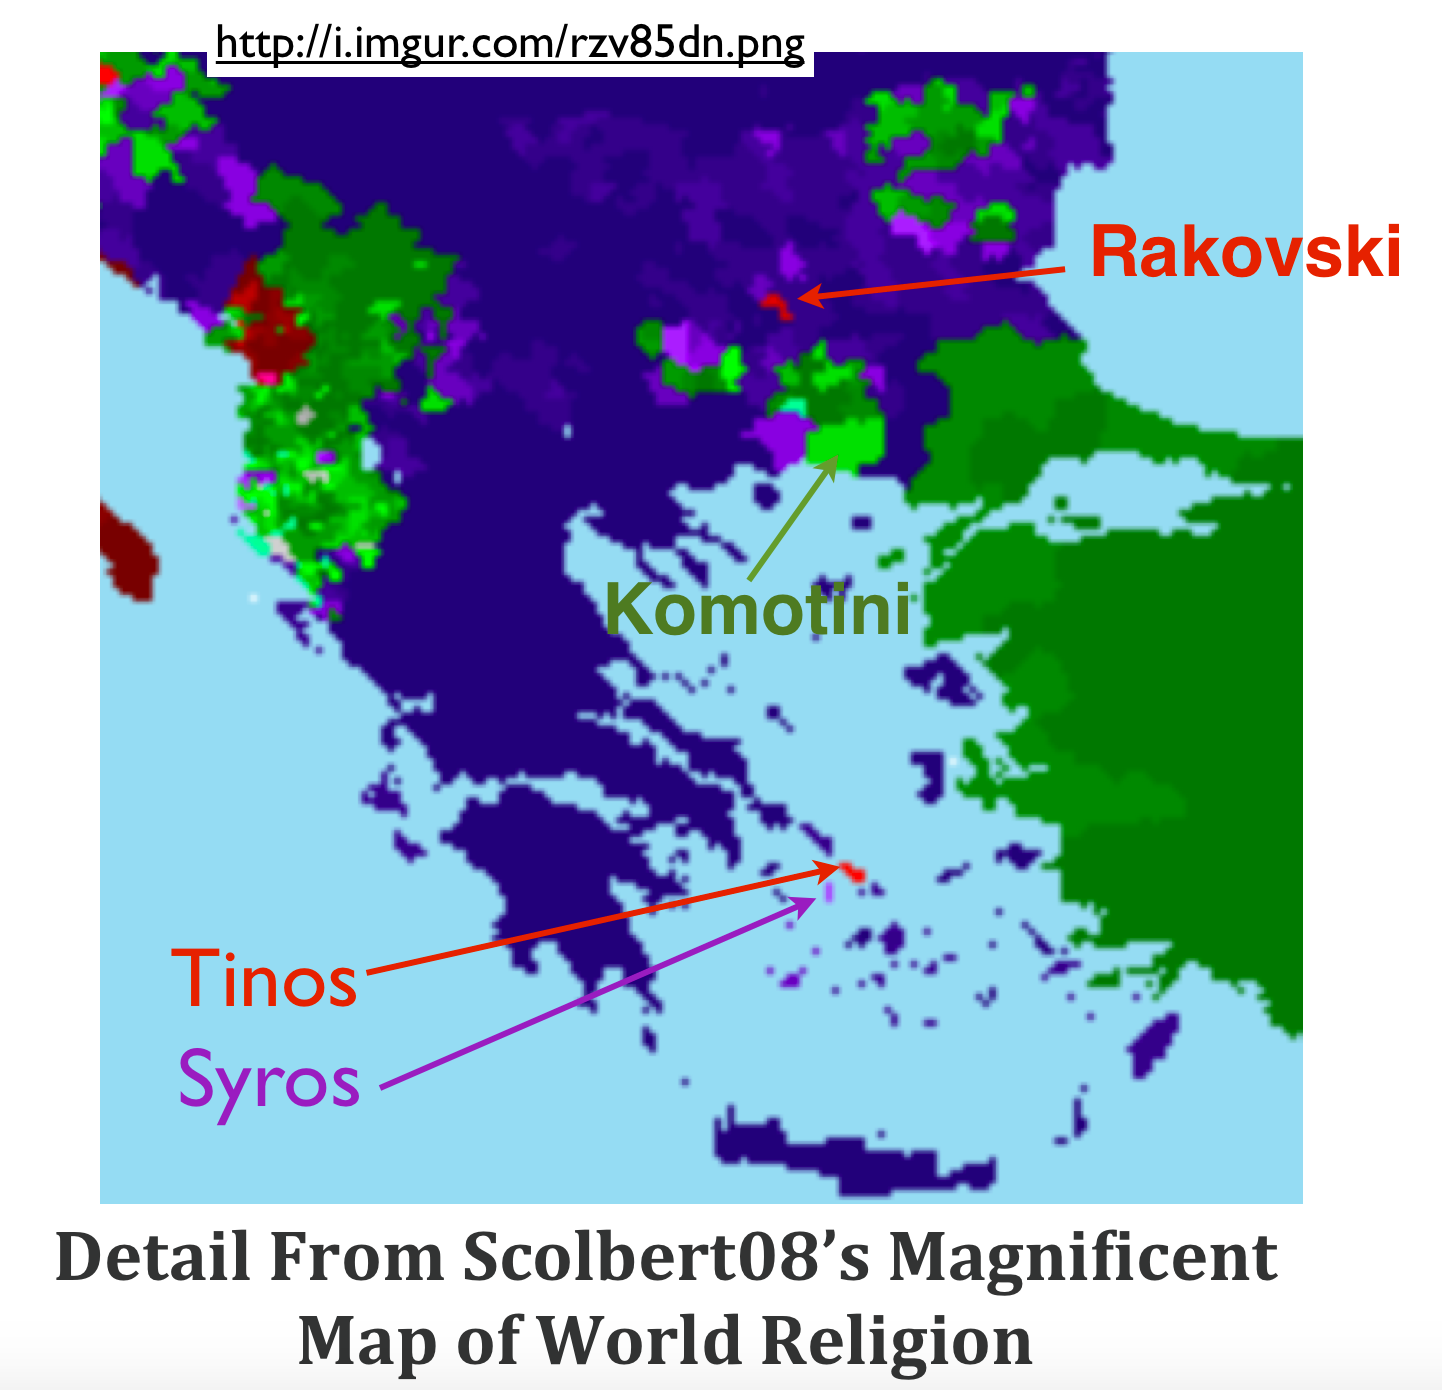 Scolbert08s magnificent map of world religion part 1 geocurrents scolbert08 religion map balkans gumiabroncs Gallery